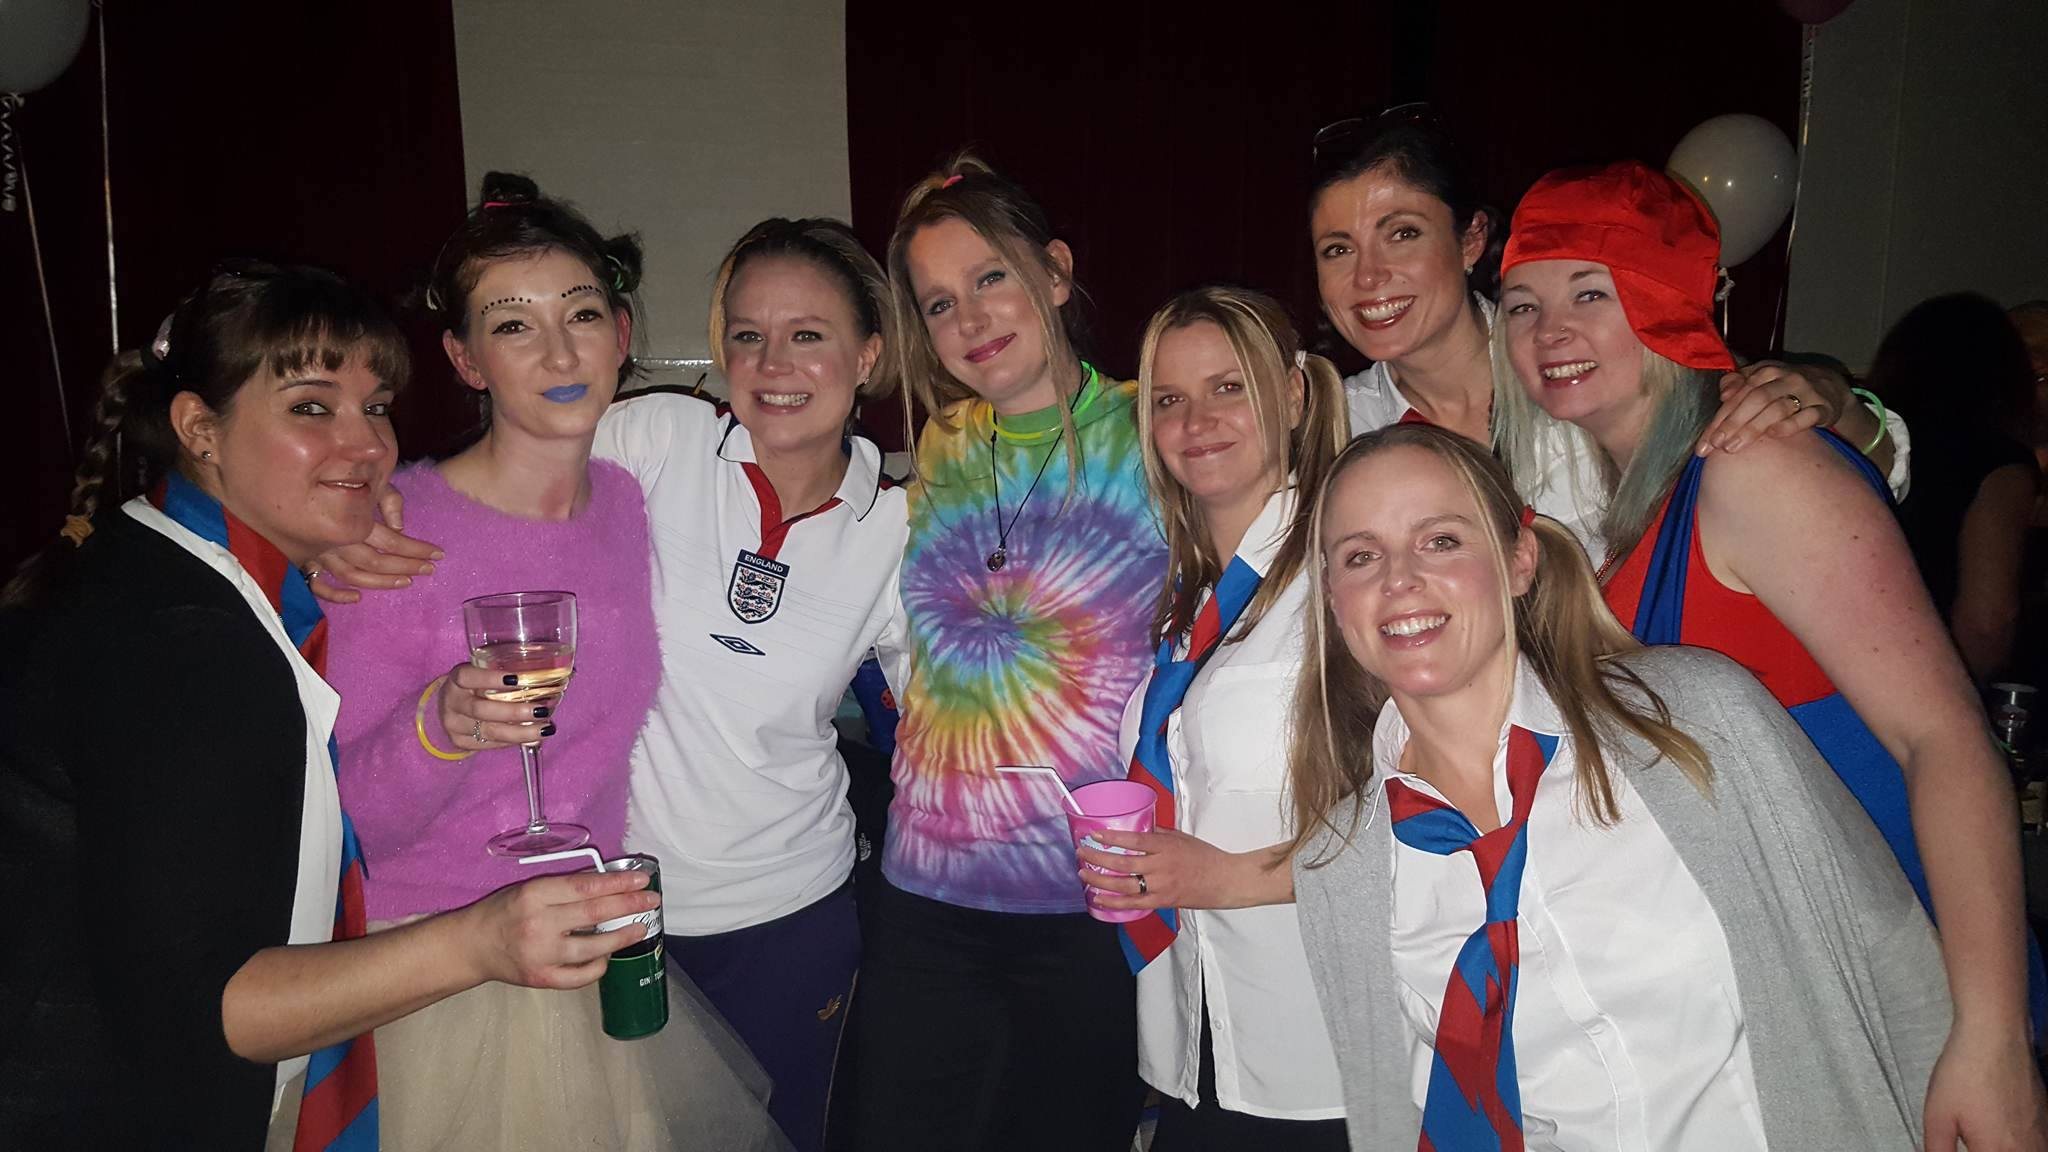 How to organise a 90's night a raise a few grand for Charity